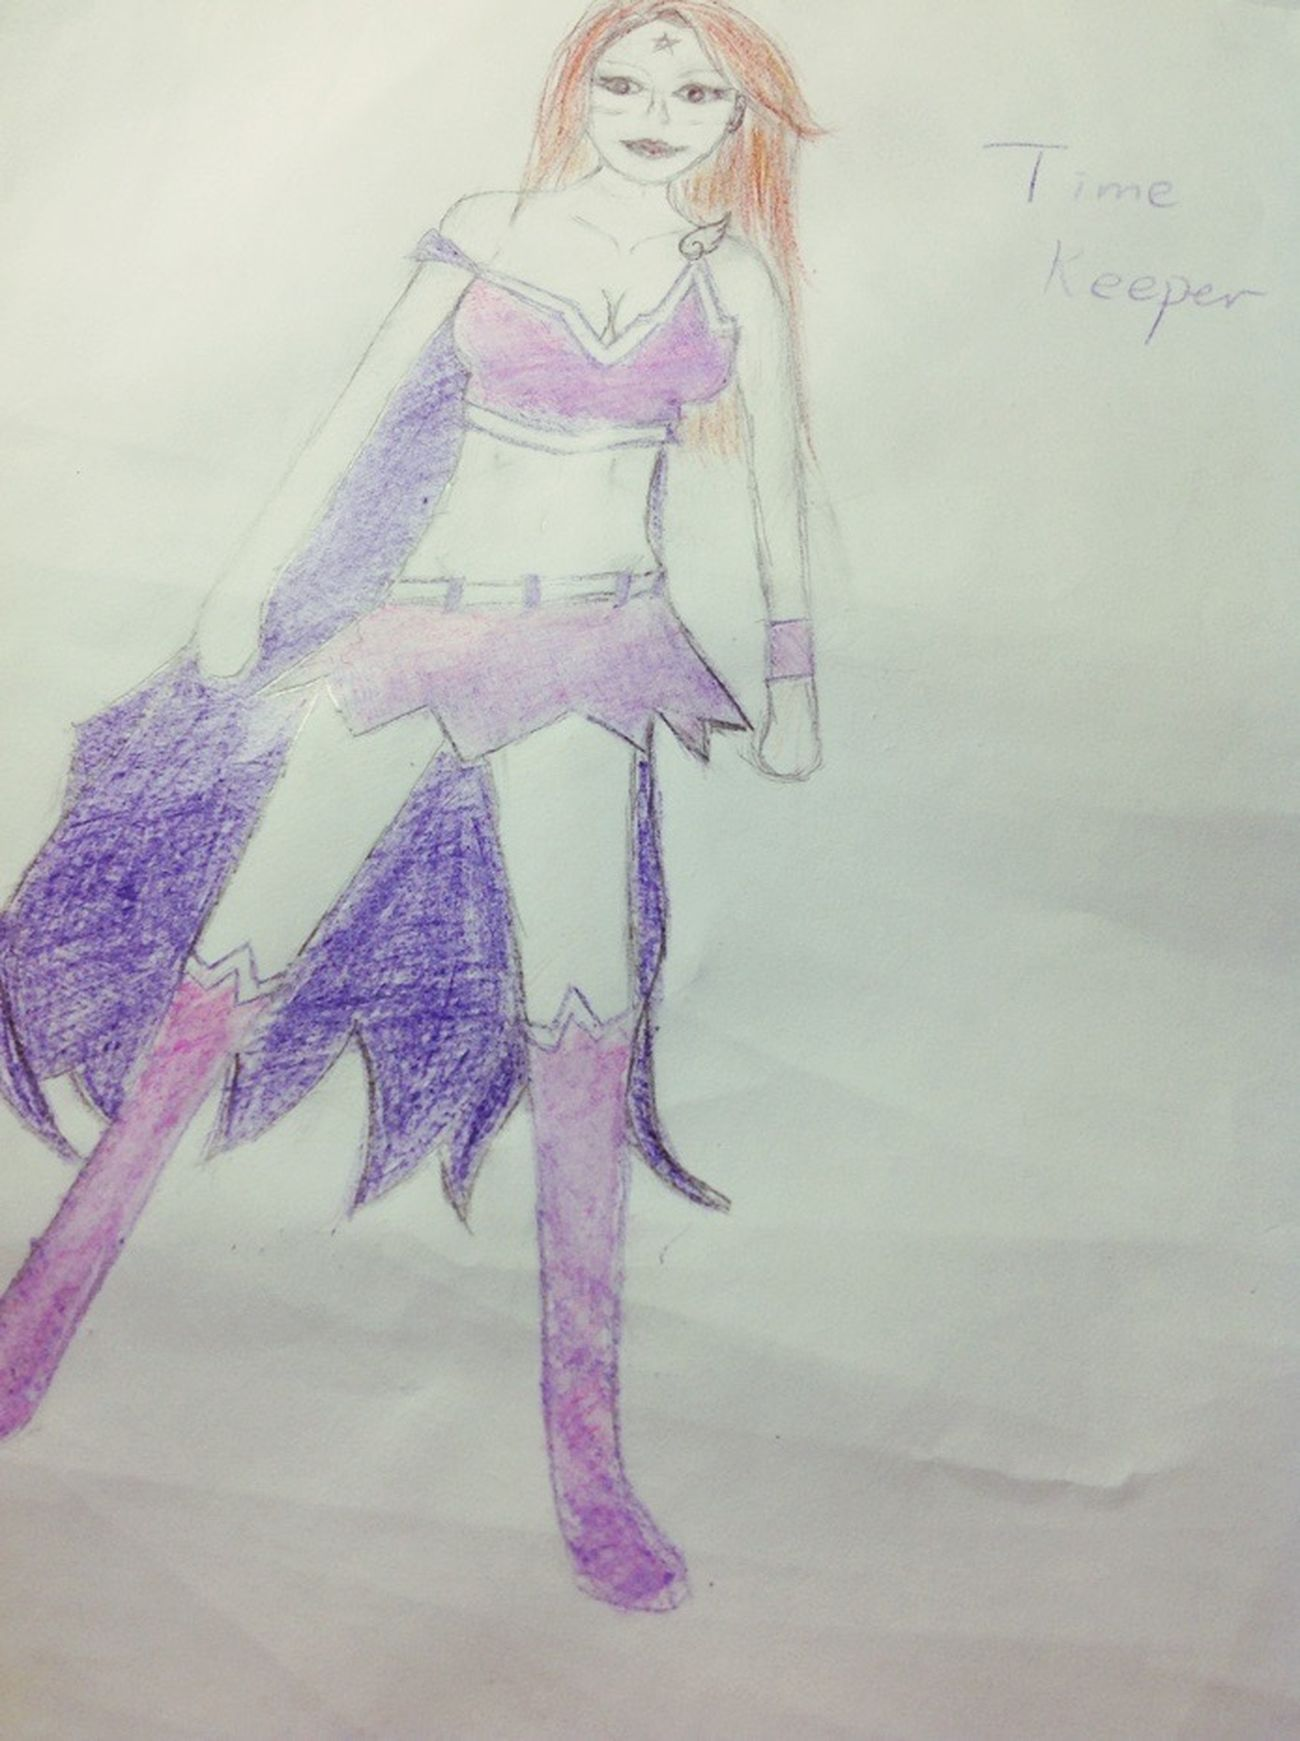 This girl called Corn is a Heroine called Time Keeper XD!! She can control time and fly and stuffsss...Lol Drawing HERO